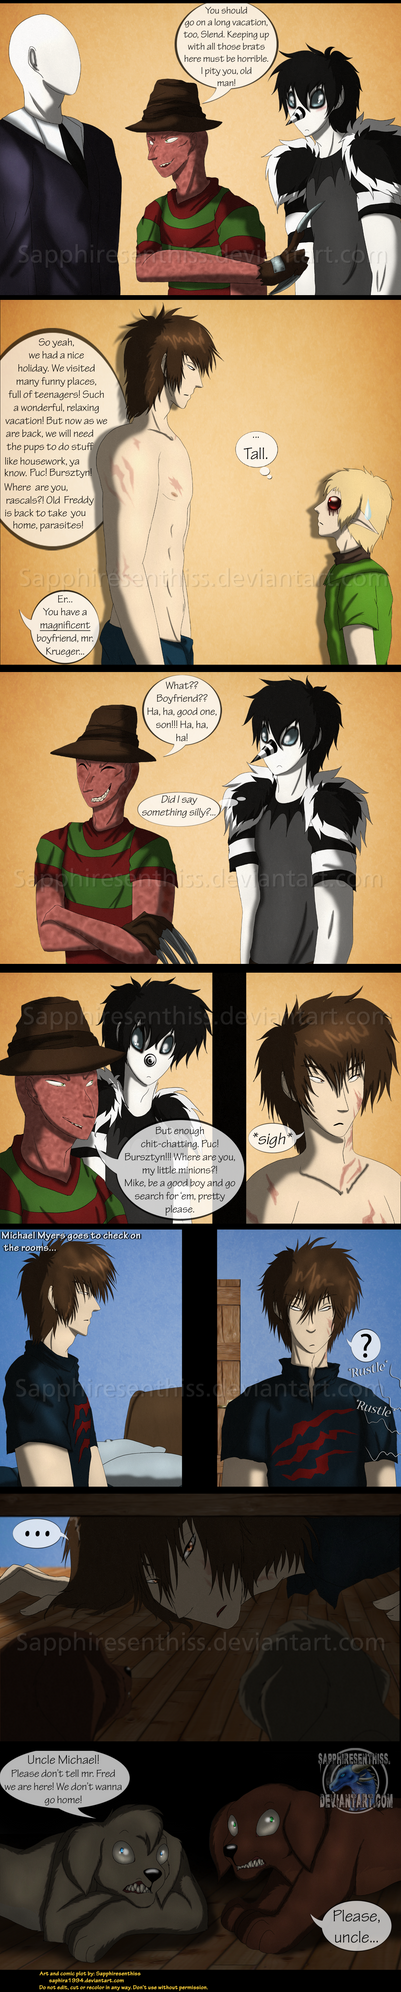 Adventures With Jeff The Killer - PAGE 165 by Sapphiresenthiss